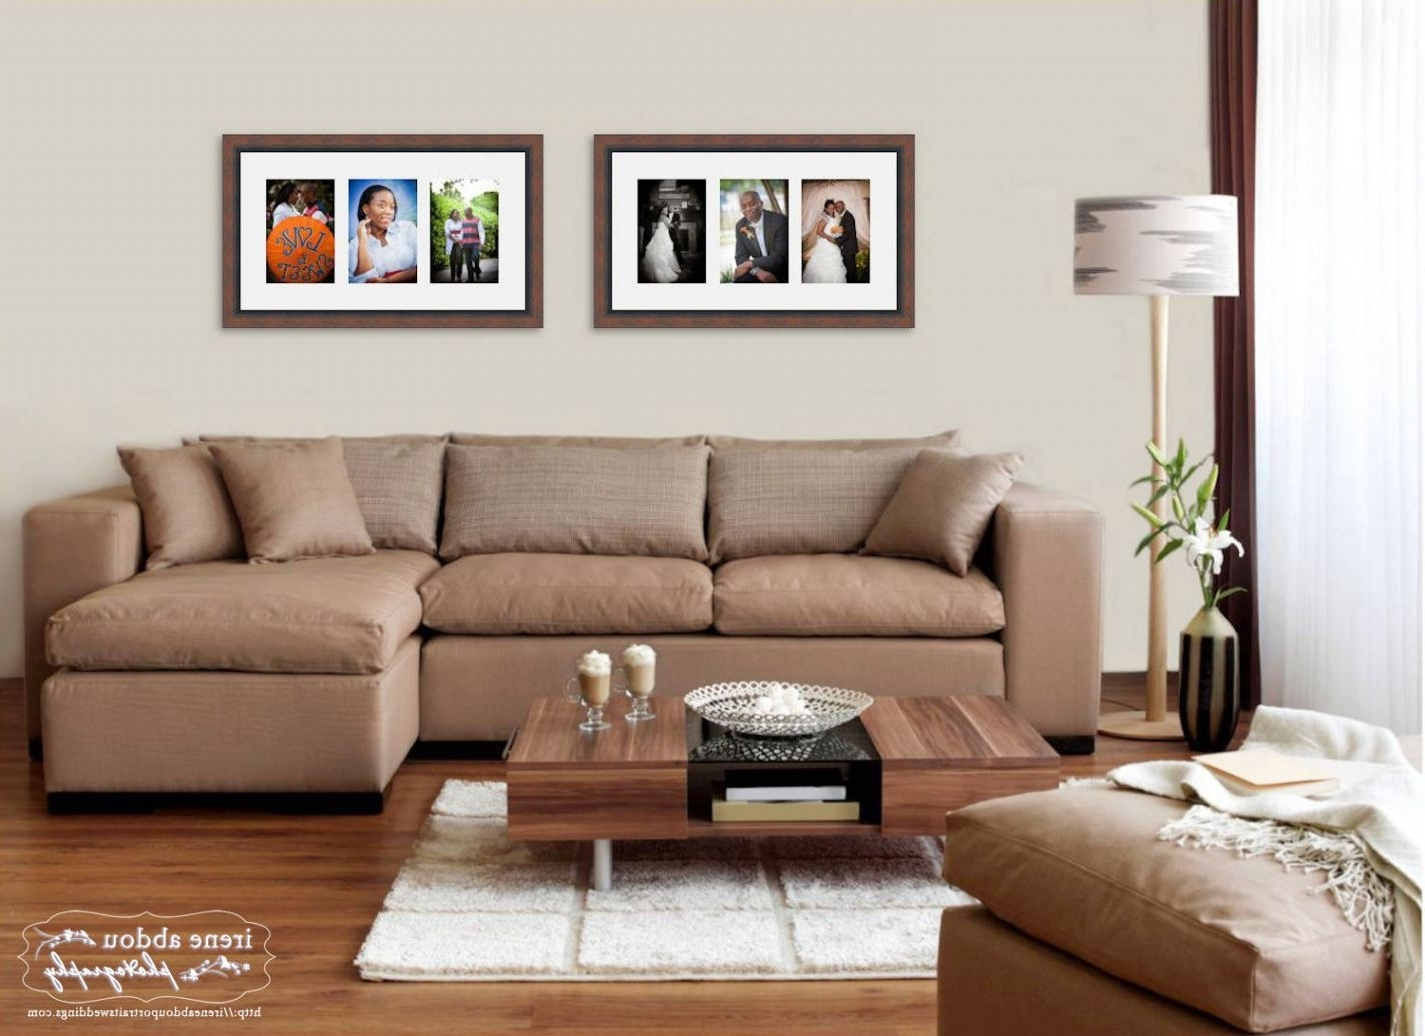 Well Known Living Room Framed Wall Art Com Exceptional Prints For With Regard To Framed Wall Art For Living Room (View 10 of 20)